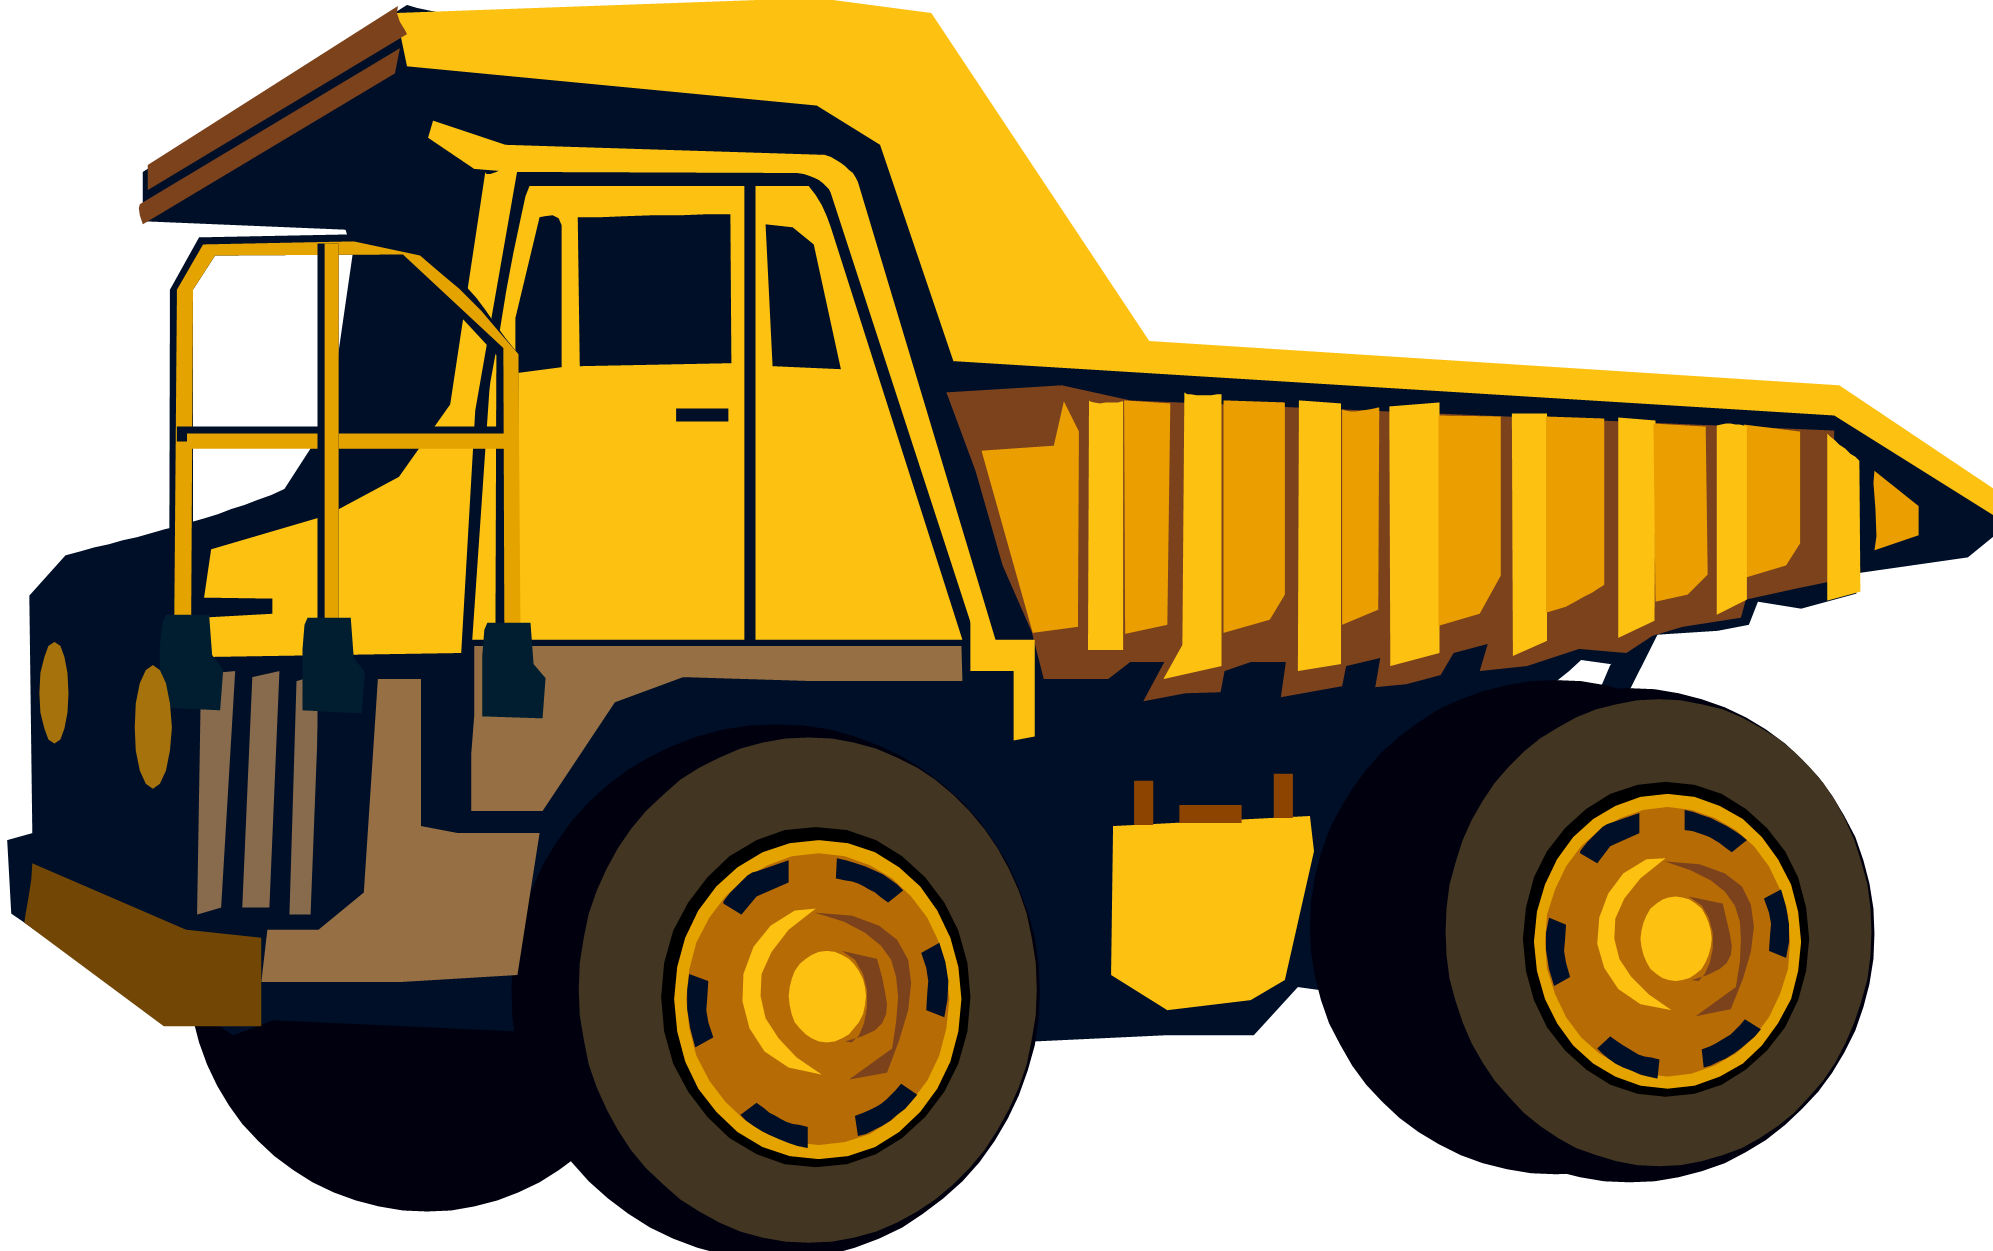 Cat dump truck clipart clipart Car vector PNG Clipart - Download free Car images in PNG - Part 6 clipart